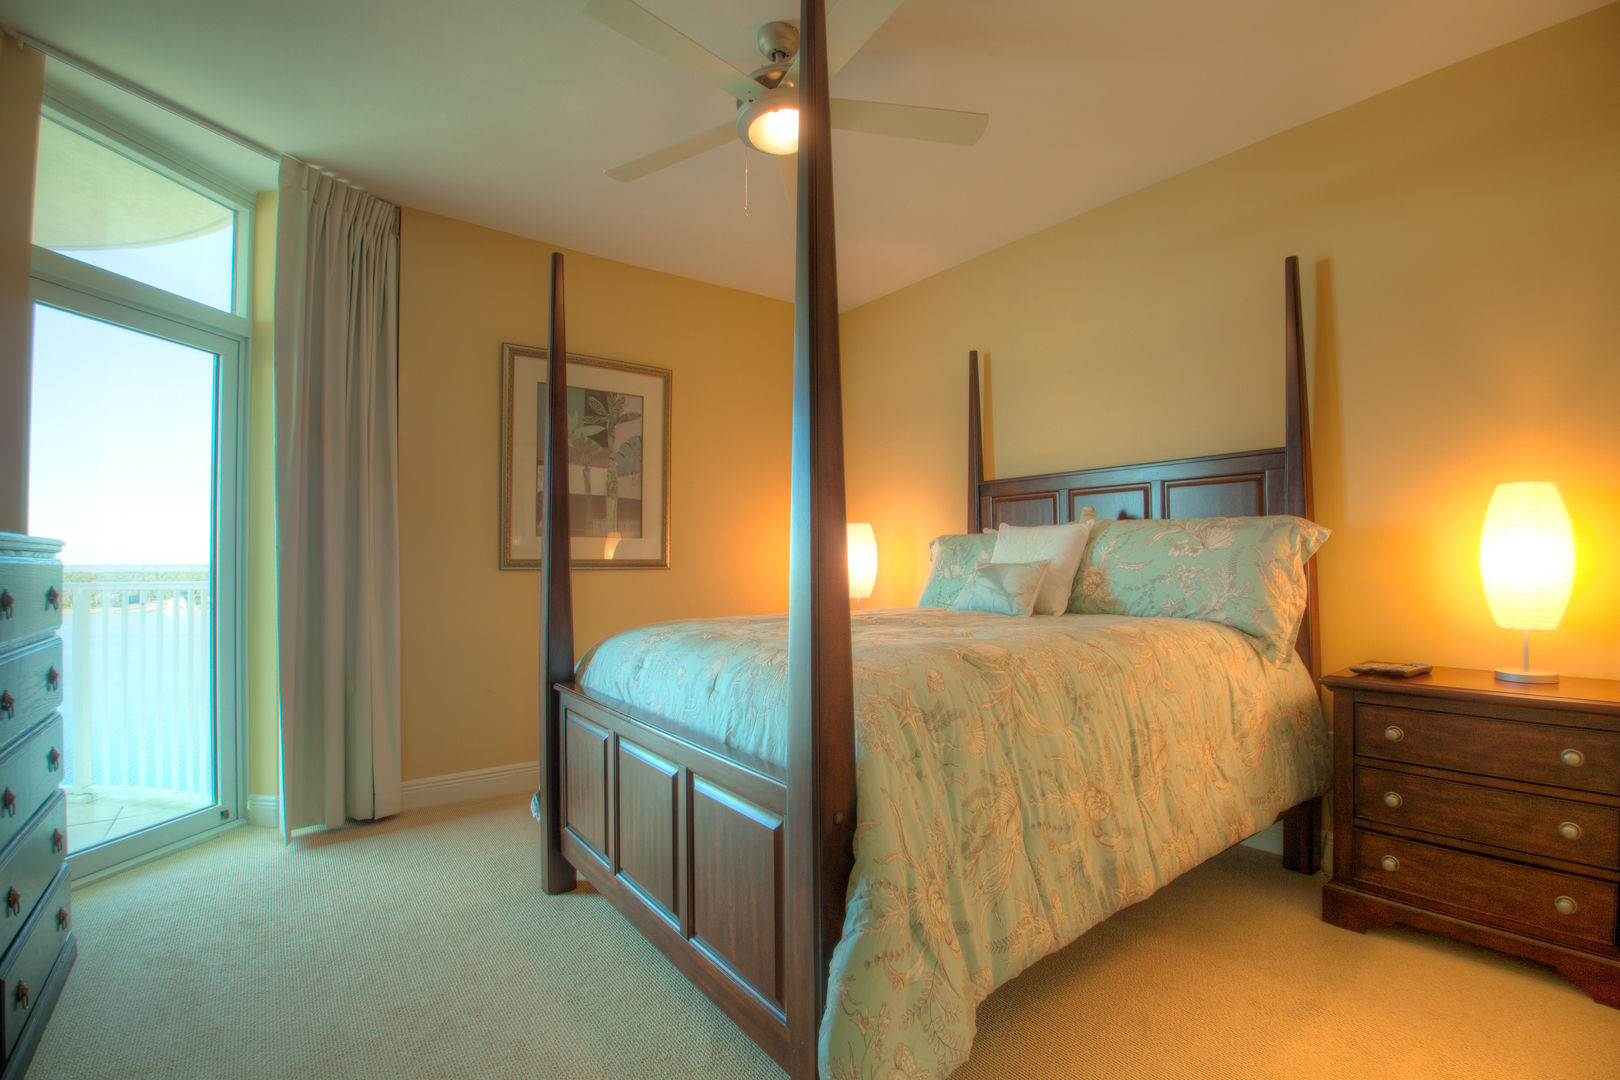 Large Bed, Ceiling Fan, Nightstand, Dresser, and Glass Door to the Balcony.